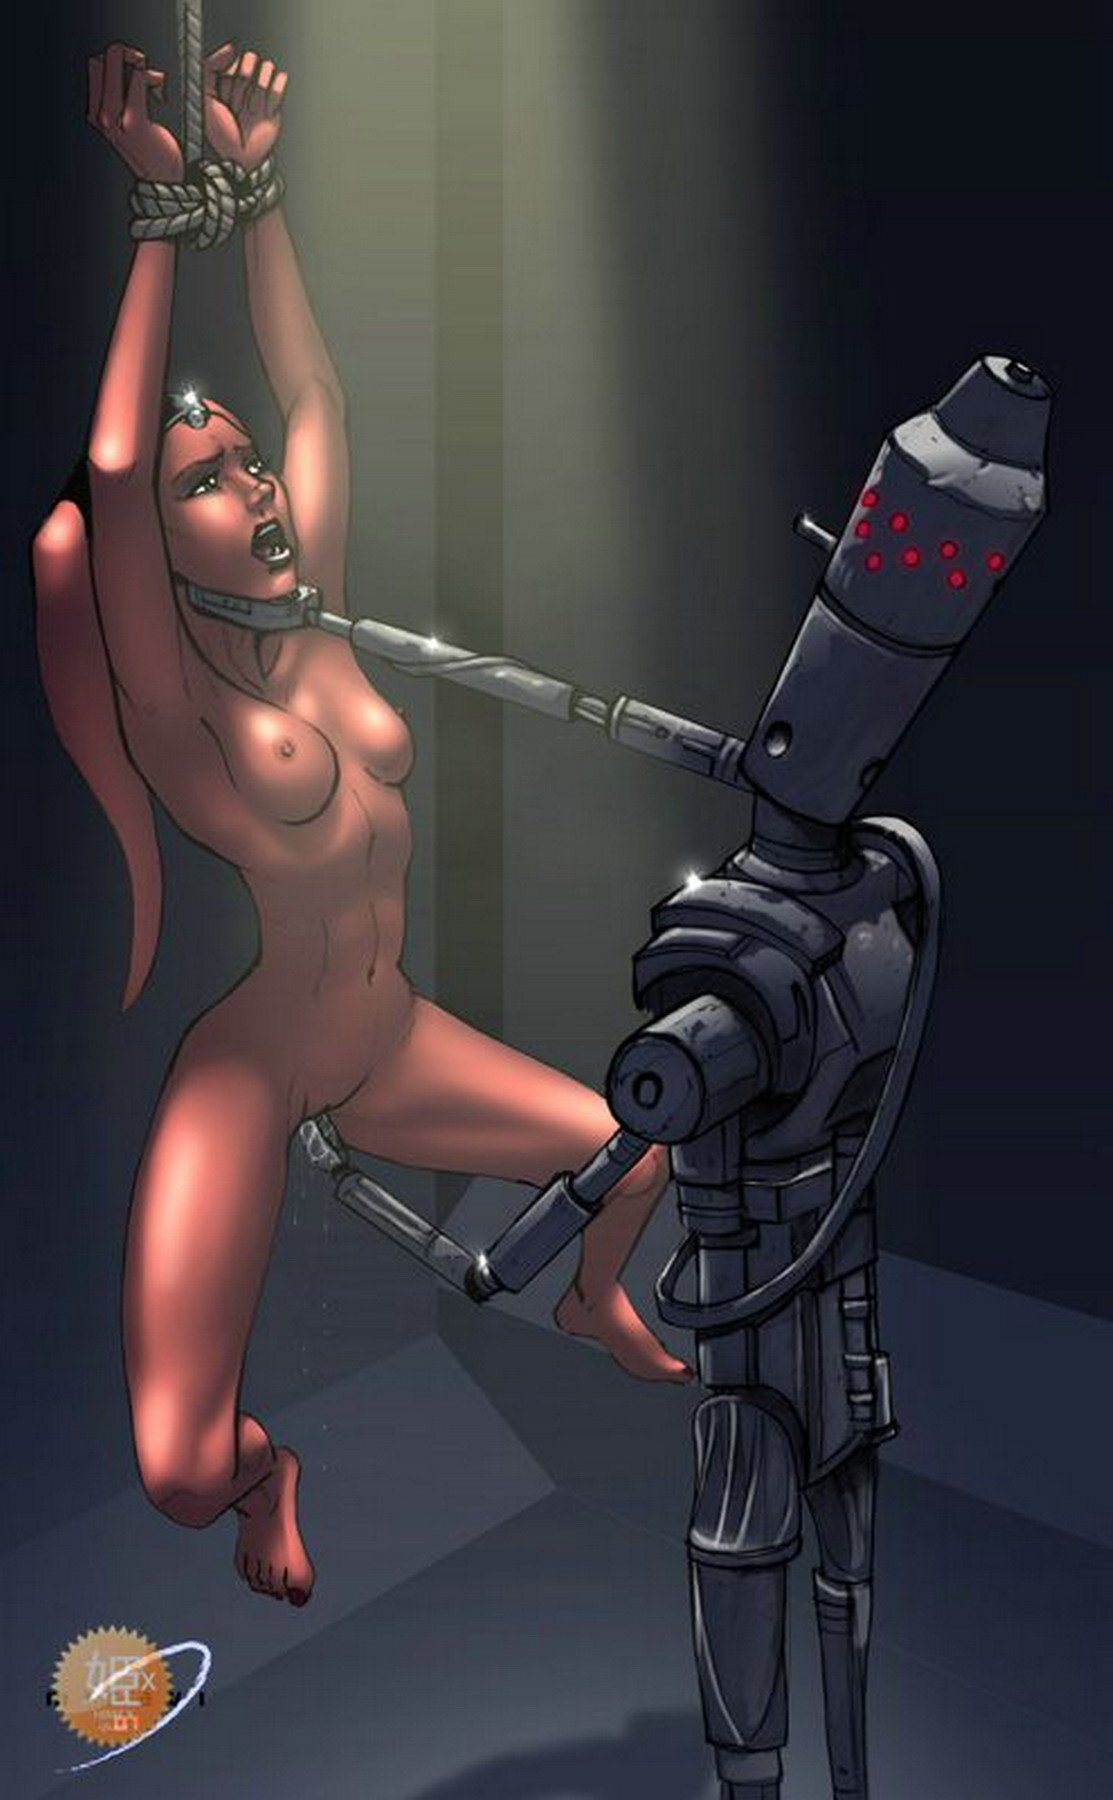 Sex with a twi'lek erotica movie